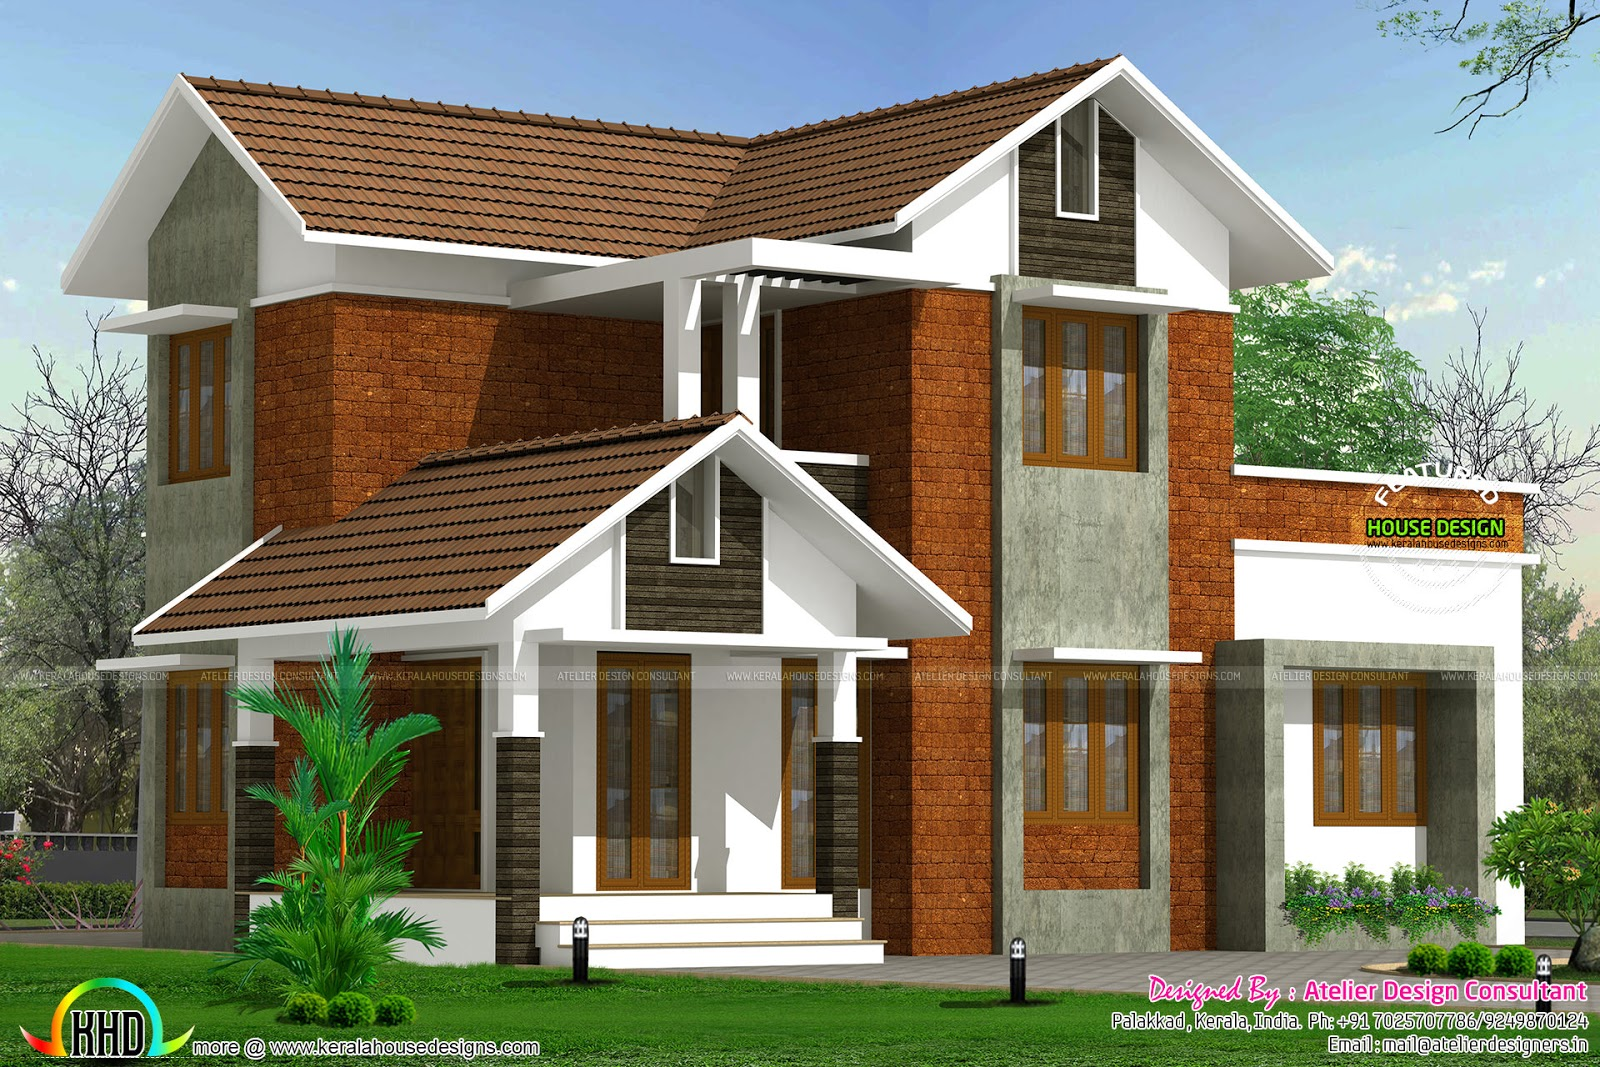 Home Design Consultant 1500 Sq Ft Kerala Home Design Kerala Home Design And  Floor Plans